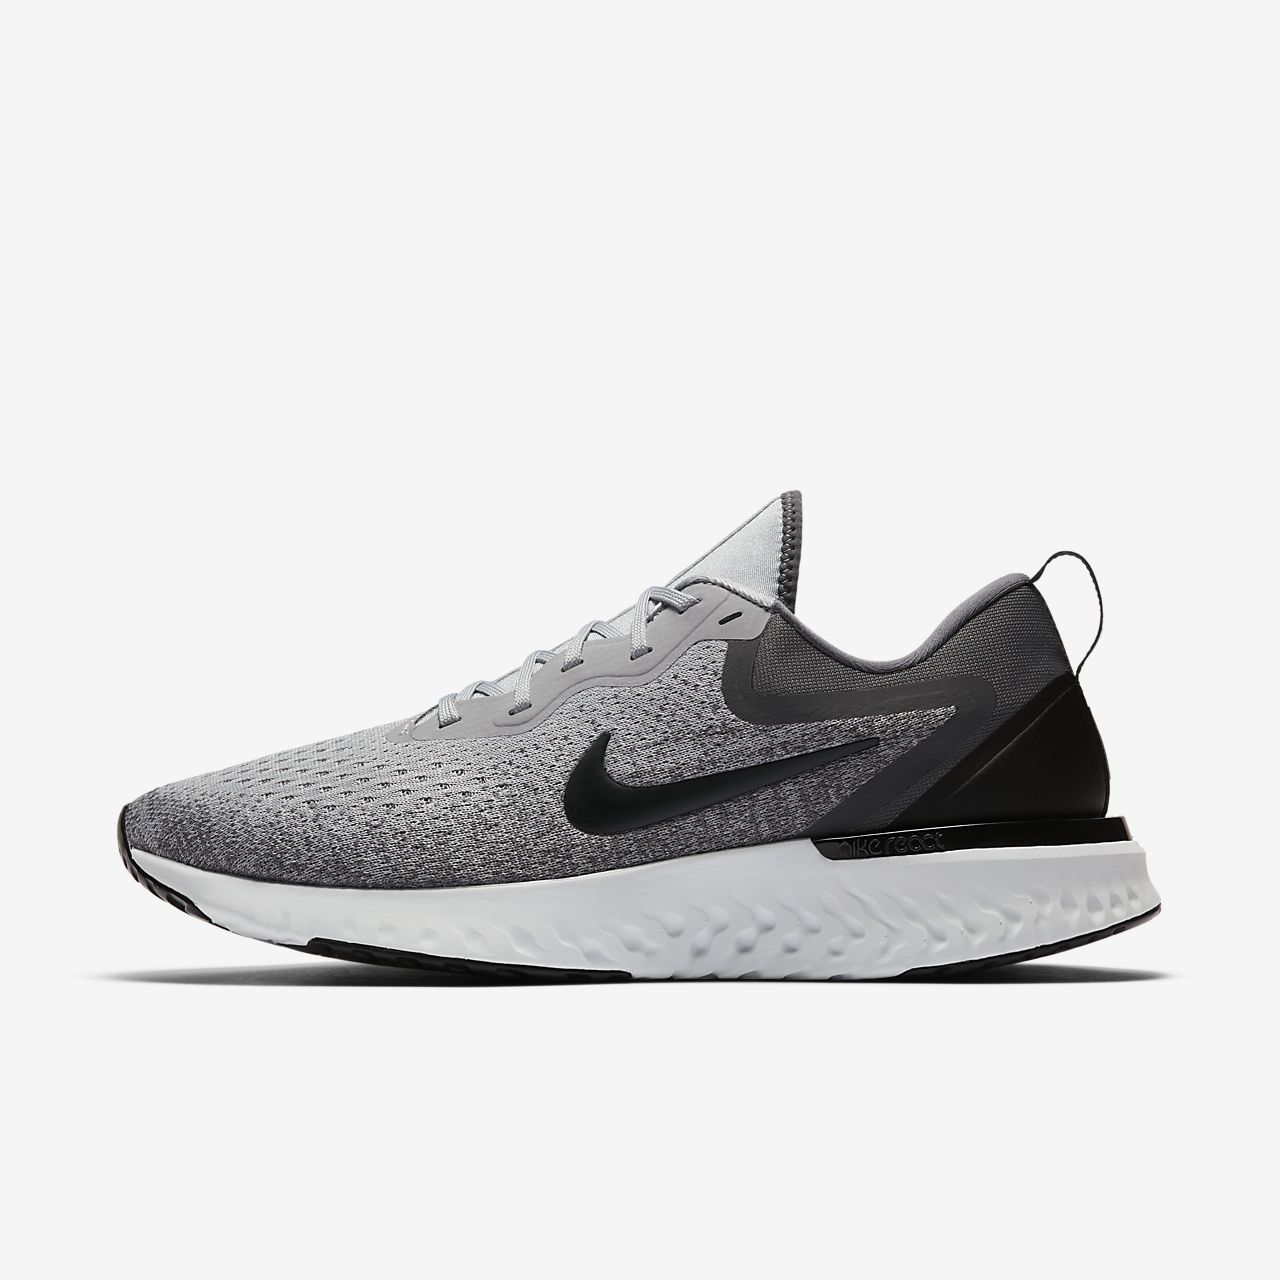 33d2c32522 Nike Odyssey React Men's Running Shoe. Nike.com LU